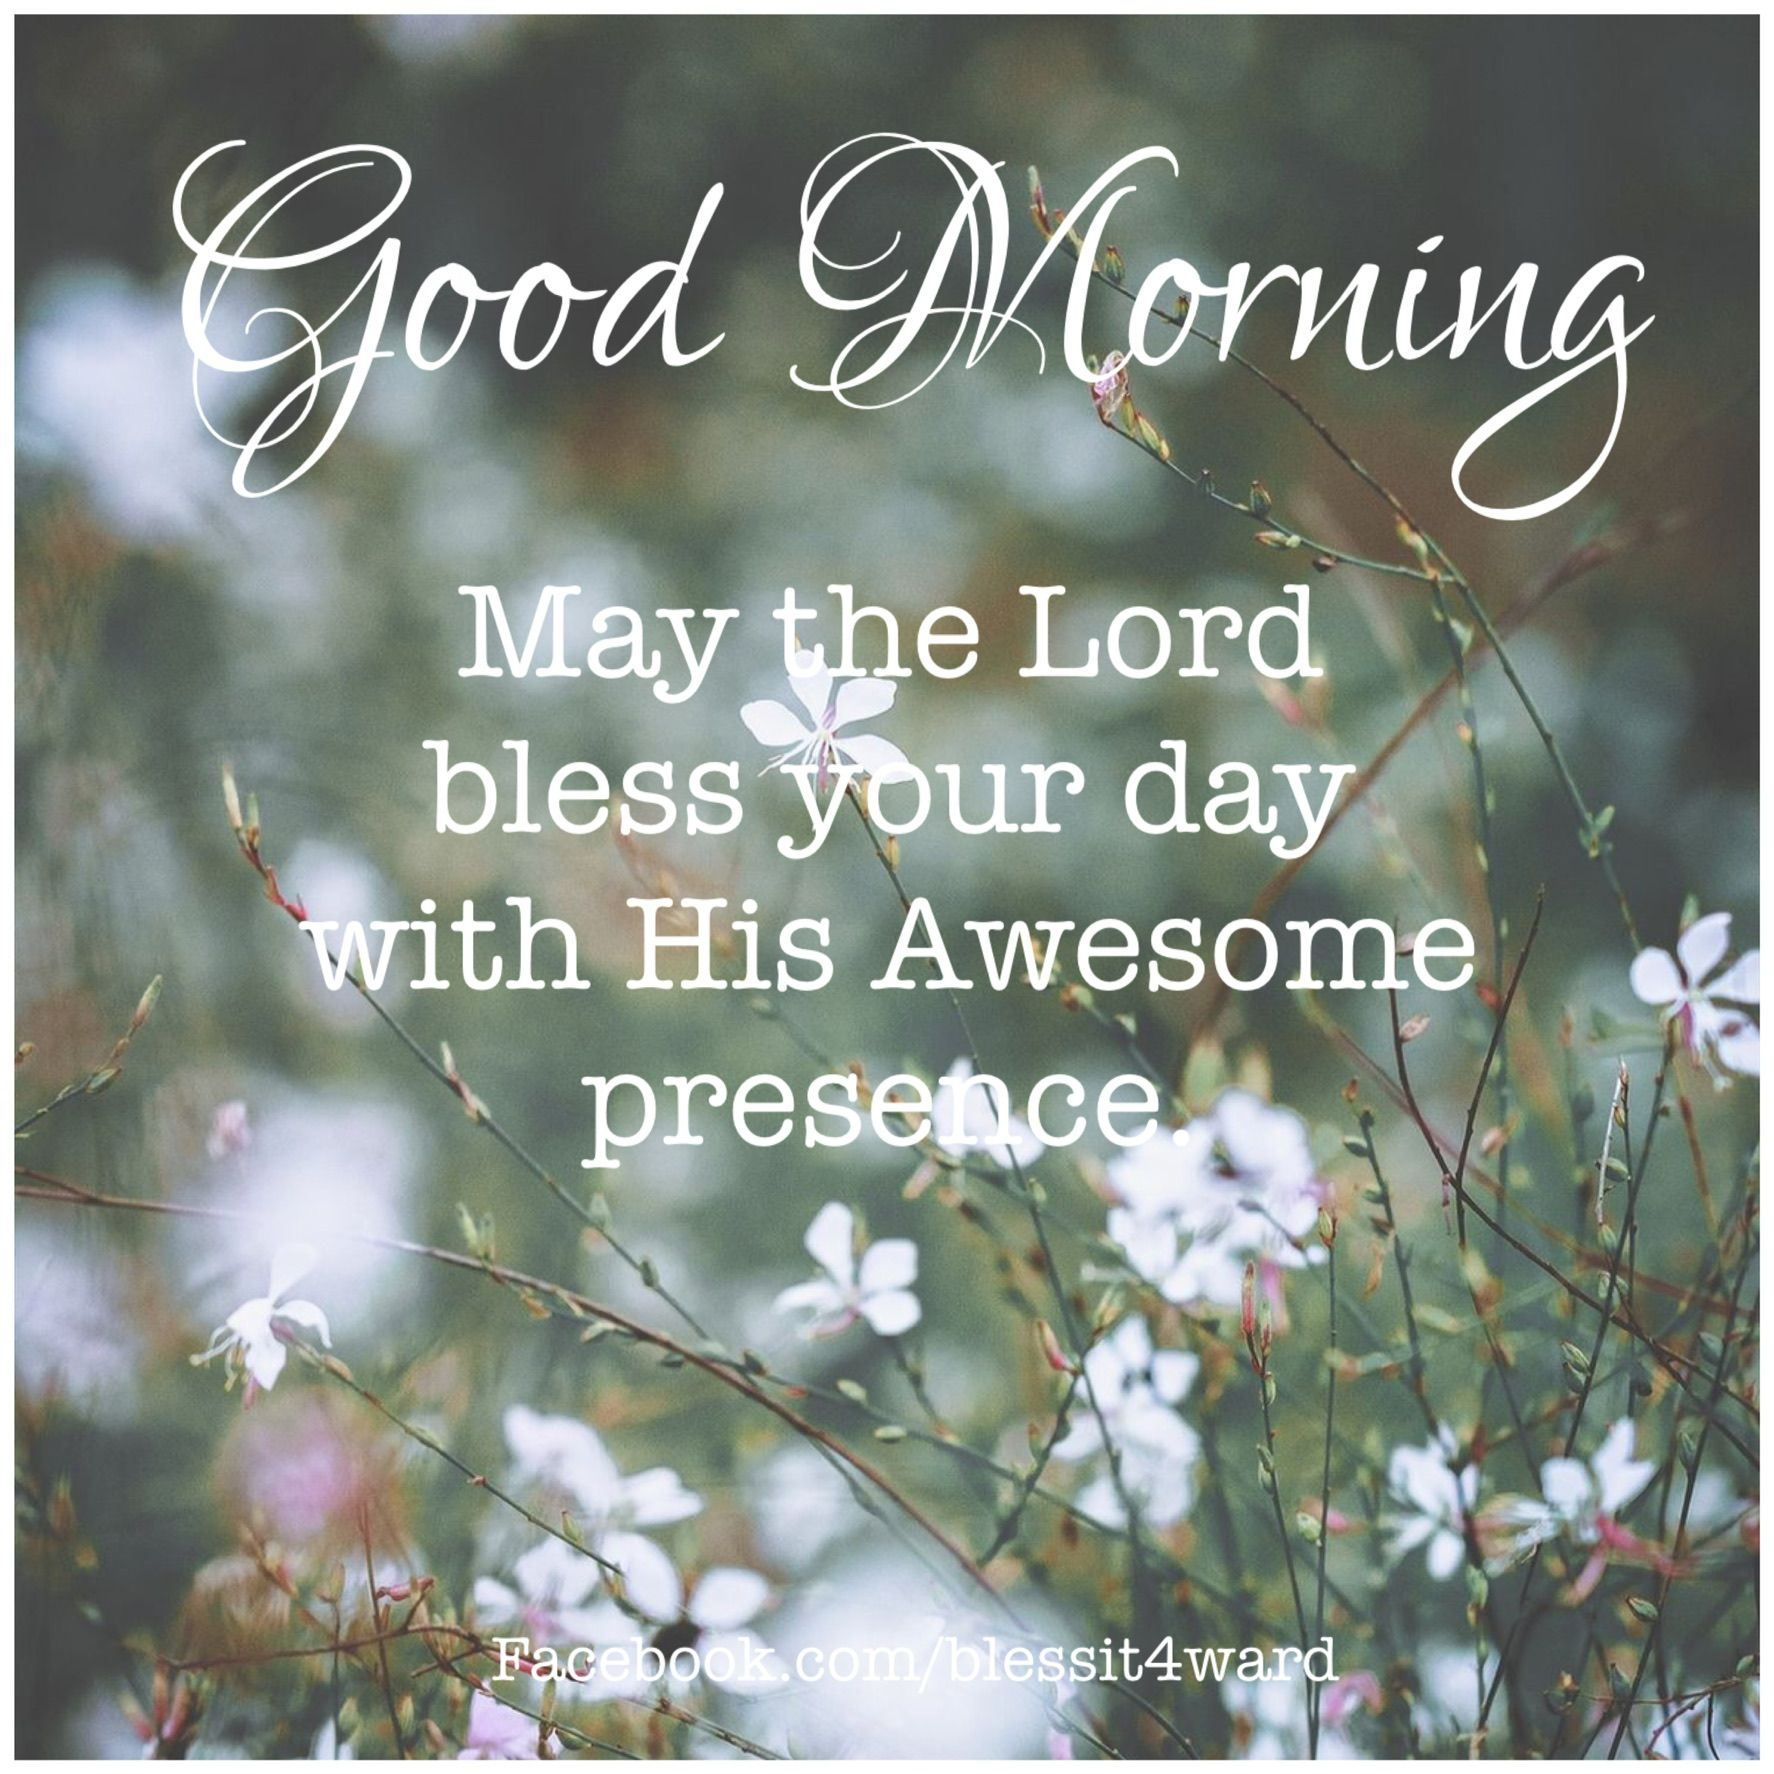 May The Lord Bless You With His Awesome Presence Today Good Morning Cards Morning Scripture Morning Wishes Quotes